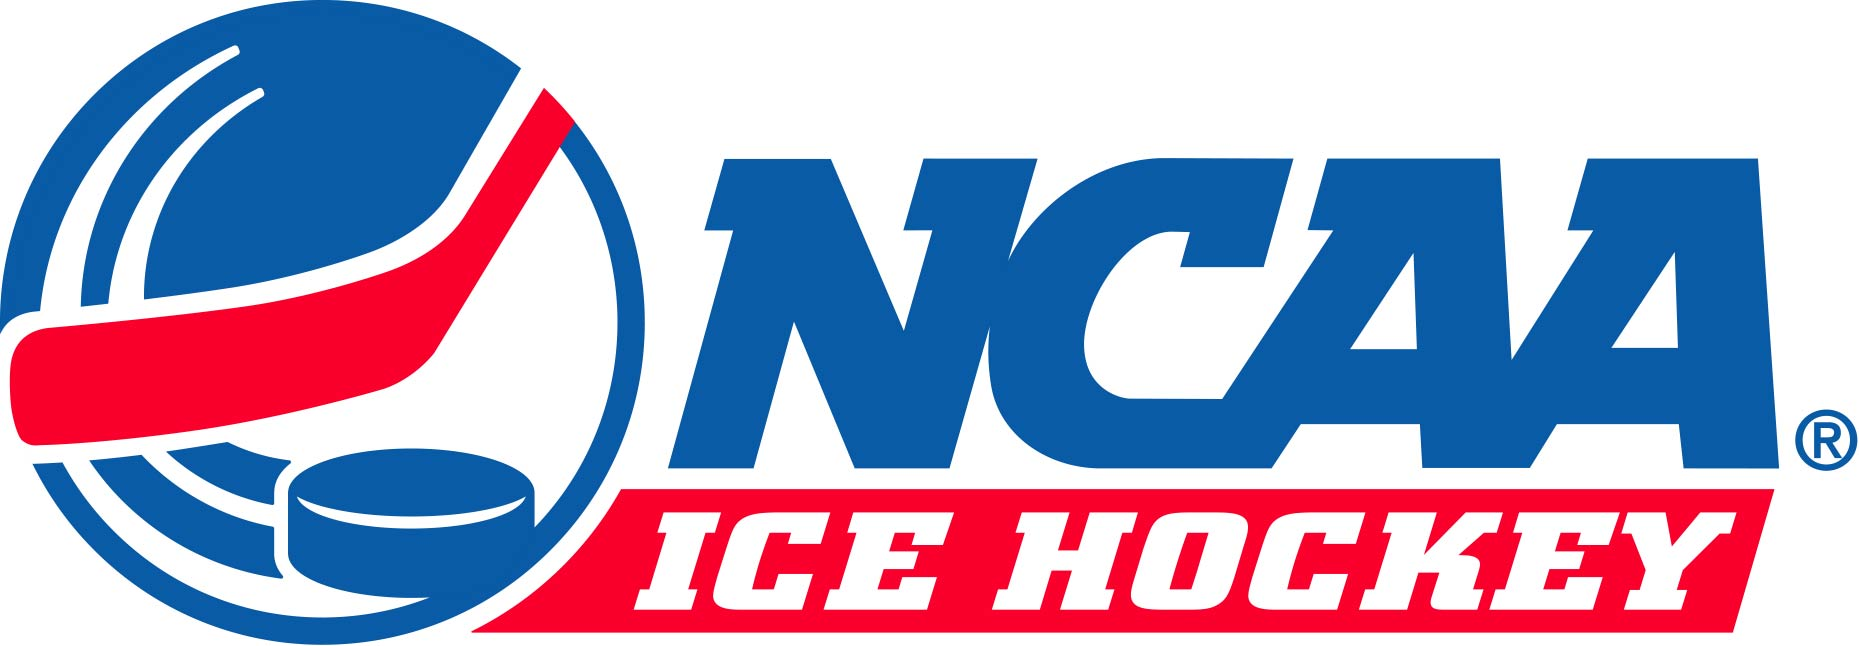 ncaahockey Catching The Torch: Leblanc Rises